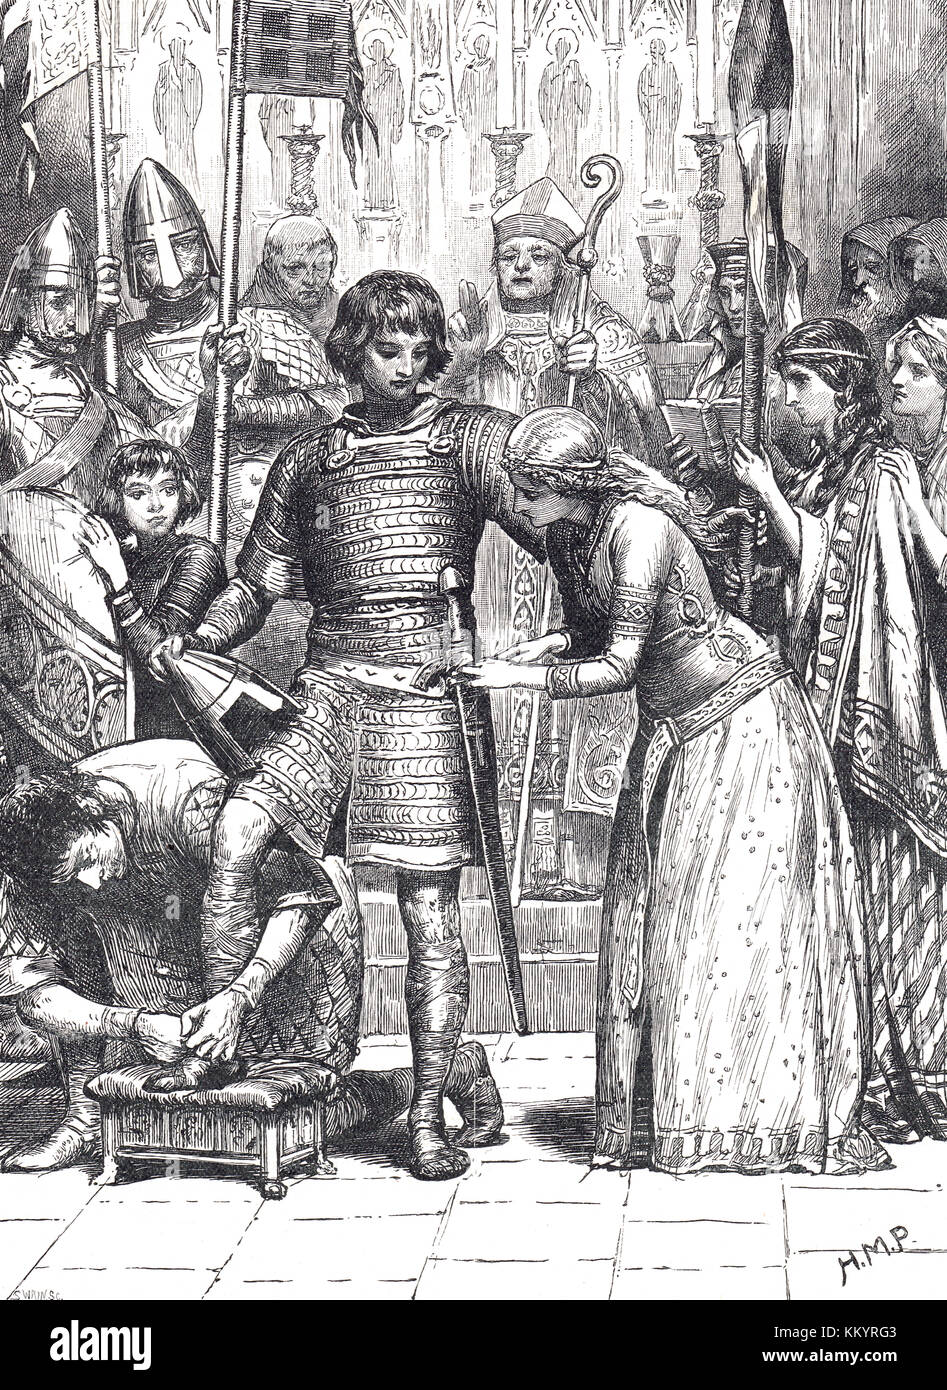 Initiation into the order of Knighthood.  The age of chivalry. - Stock Image